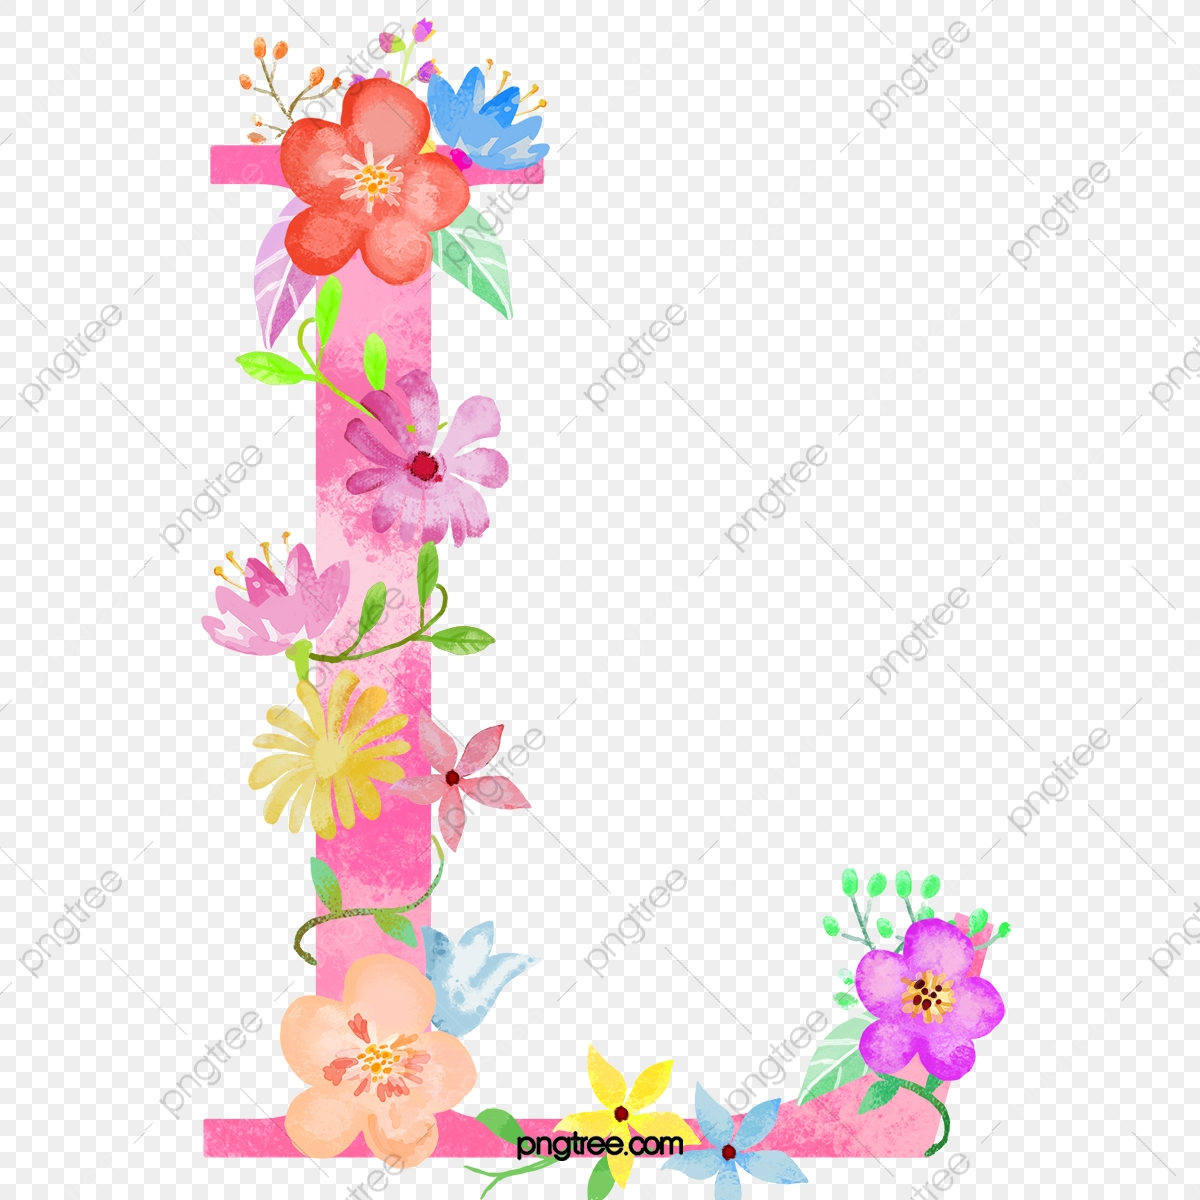 Flowers Letter L Letter Flower L Png Transparent Clipart Image And Psd File For Free Download